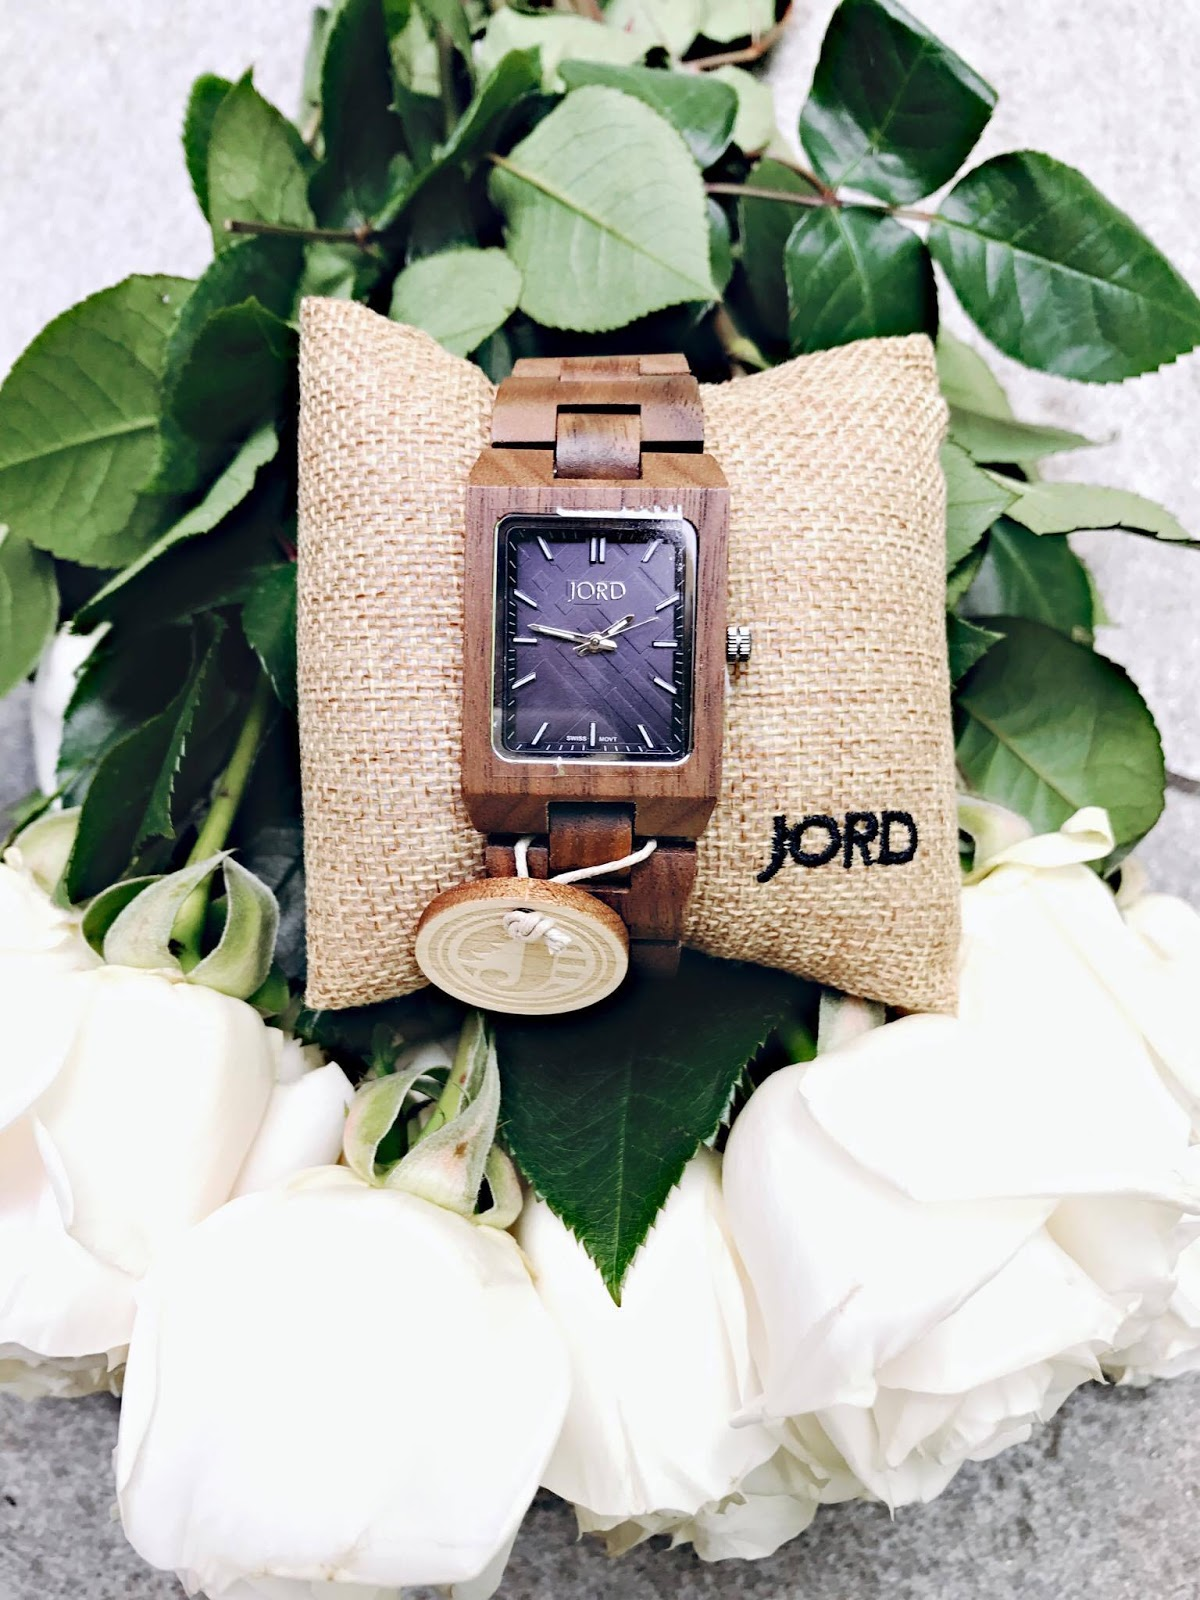 http://www.jordwatches.com/series/reece/walnut-and-navy/#martalarissa